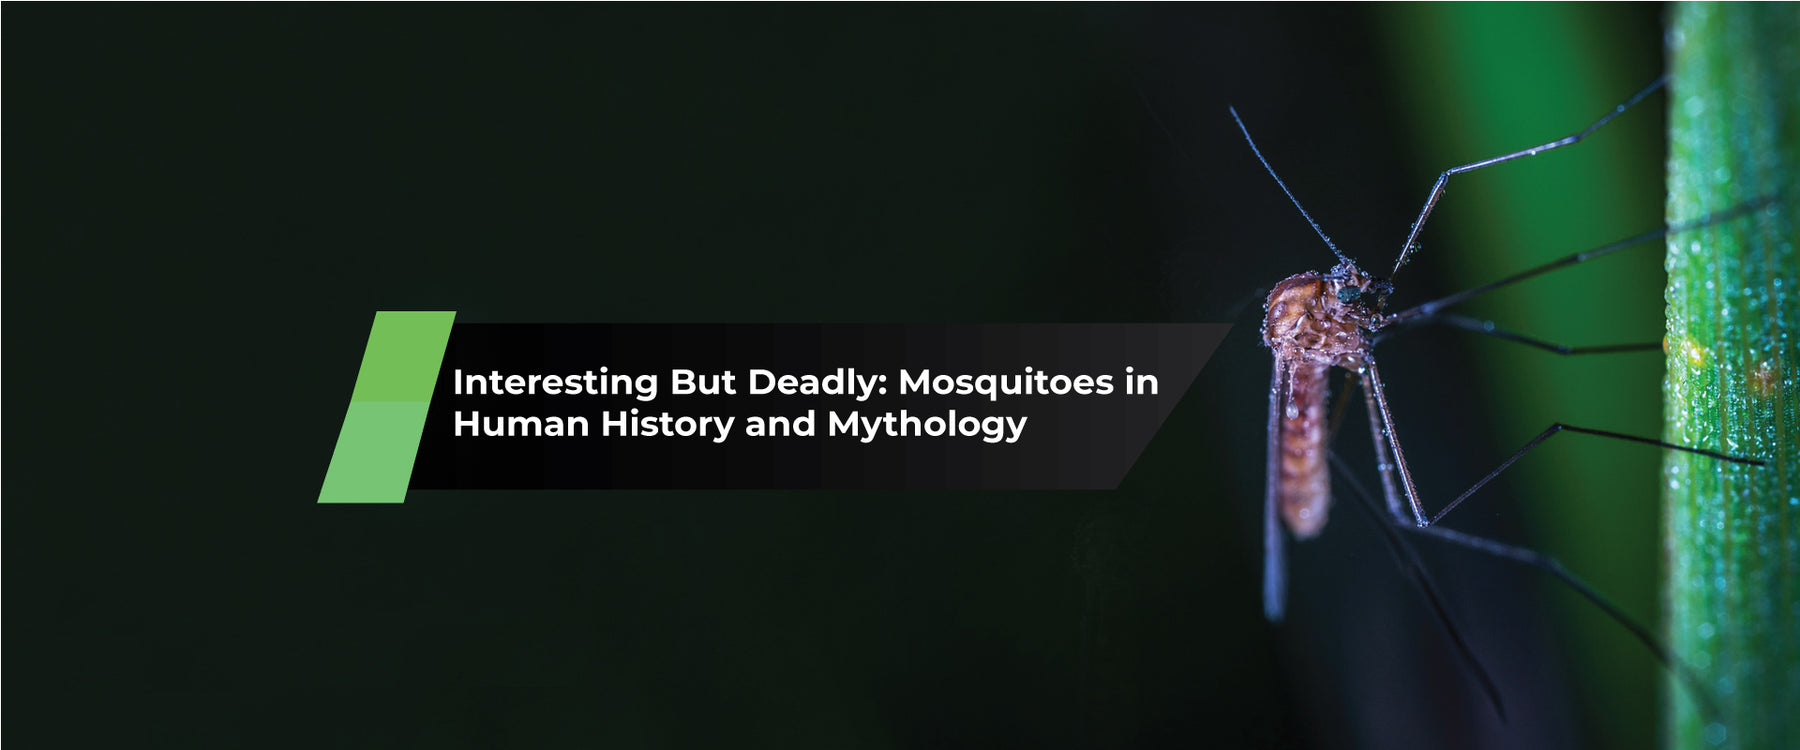 Interesting But Deadly: Mosquitoes in Human History and Mythology